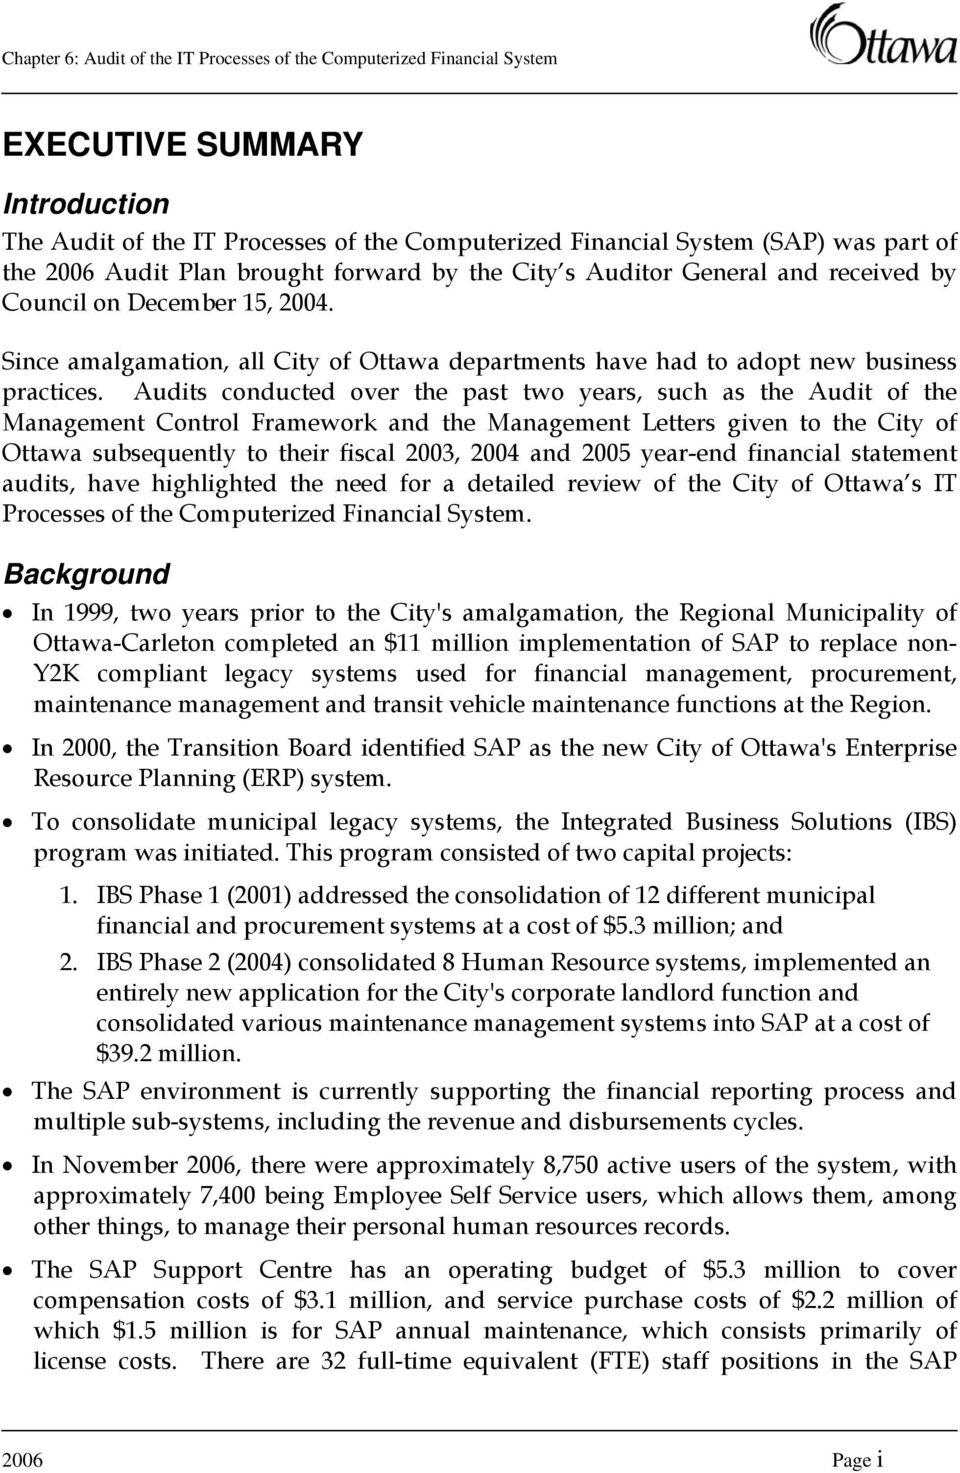 Audits conducted over the past two years, such as the Audit of the Management Control Framework and the Management Letters given to the City of Ottawa subsequently to their fiscal 2003, 2004 and 2005